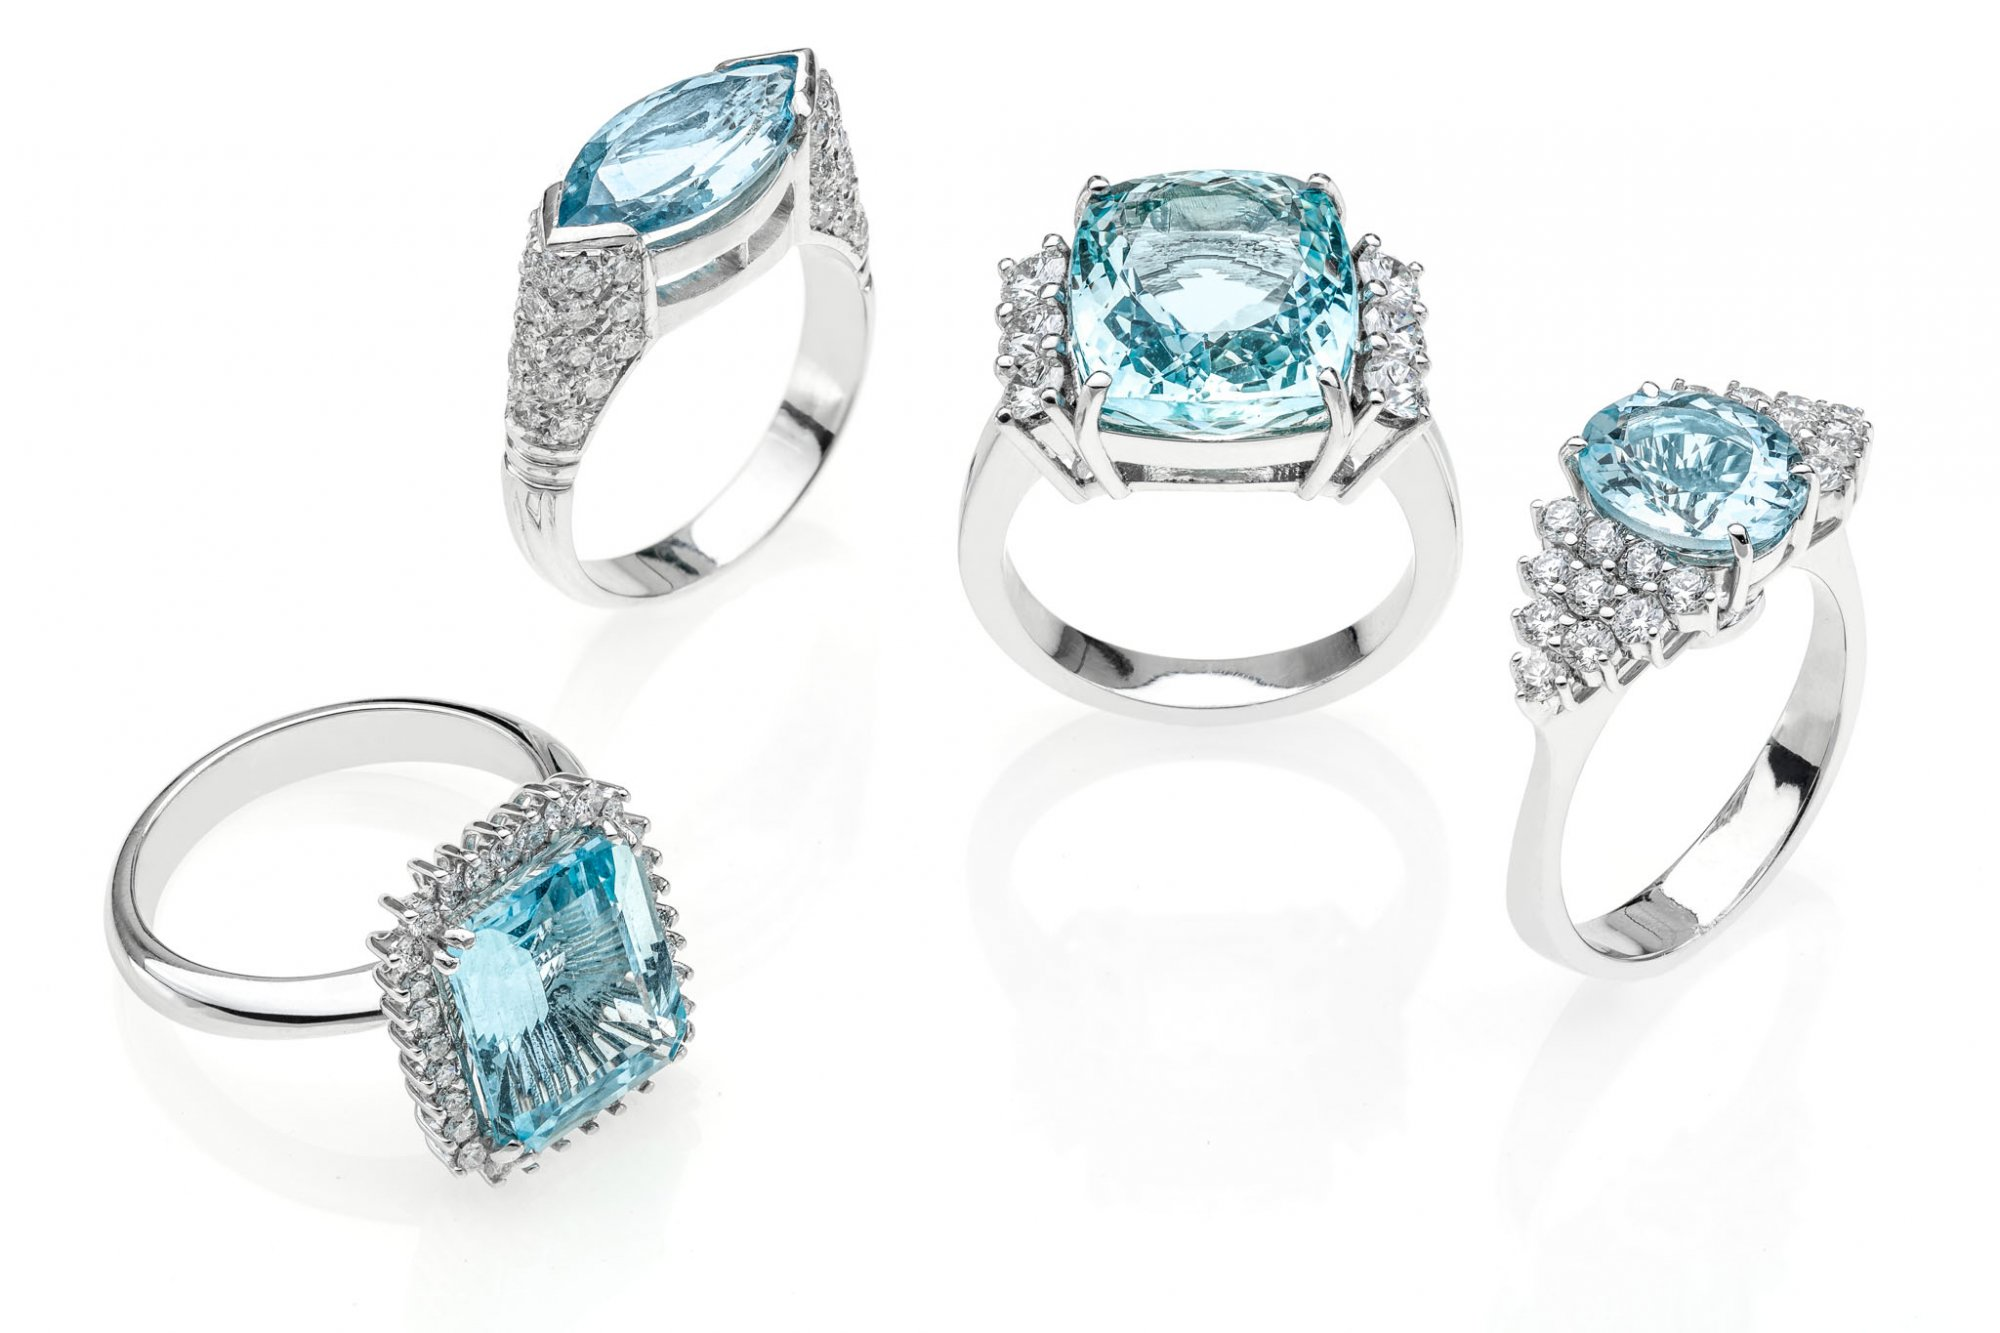 18 KT white gold rings with natural Aquamarine and natural round brilliant cut diamonds